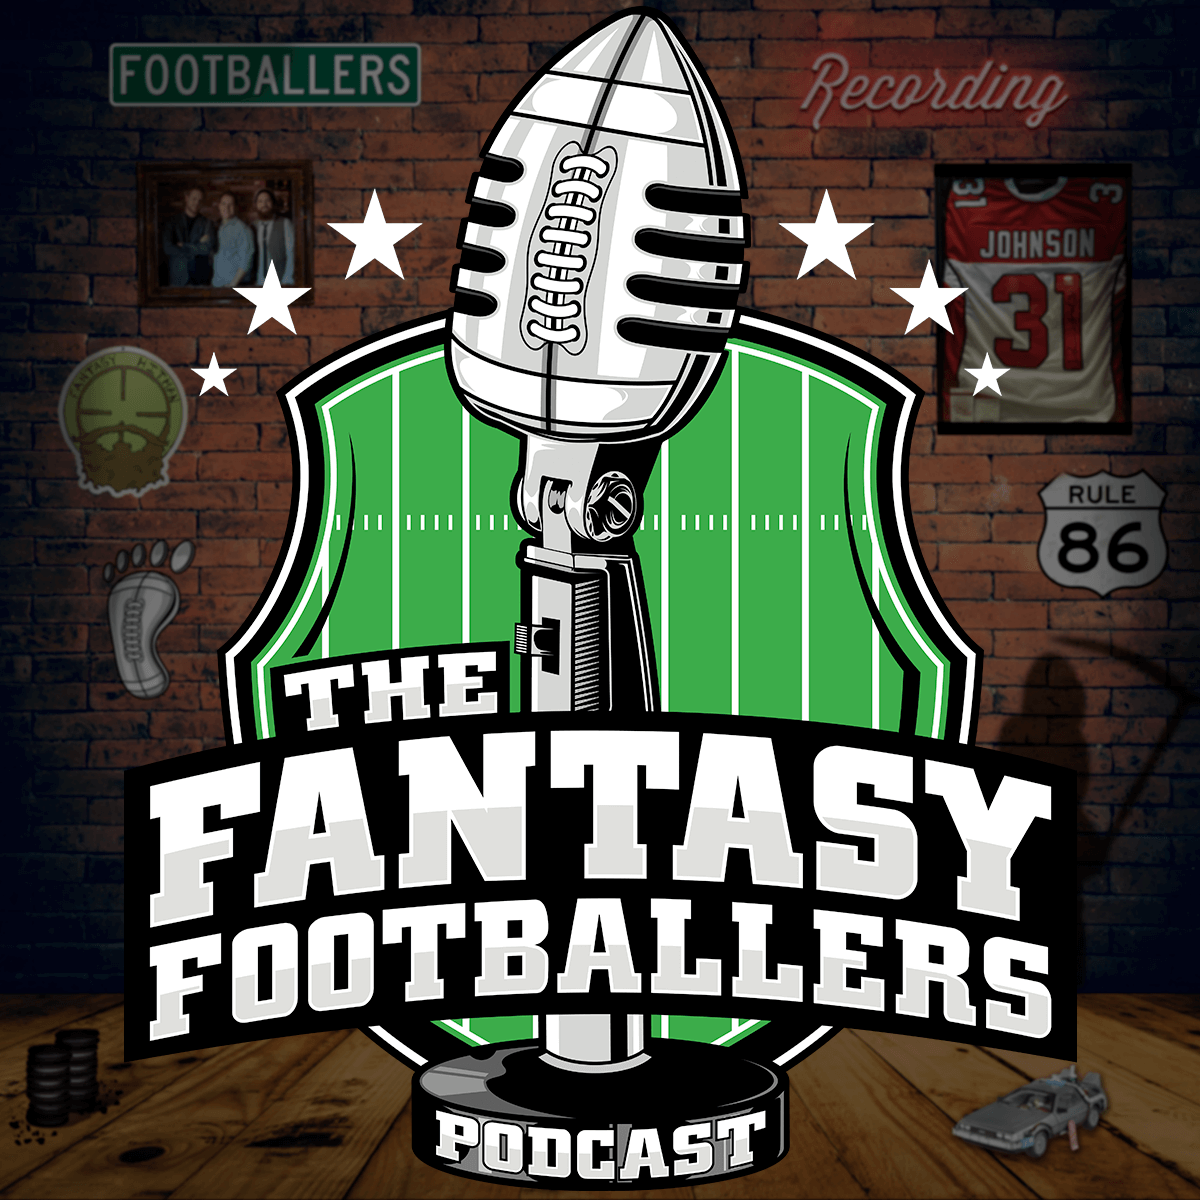 1 Fantasy Football Podcast The Footballers Humbucker Wiring Diagram 400 Art